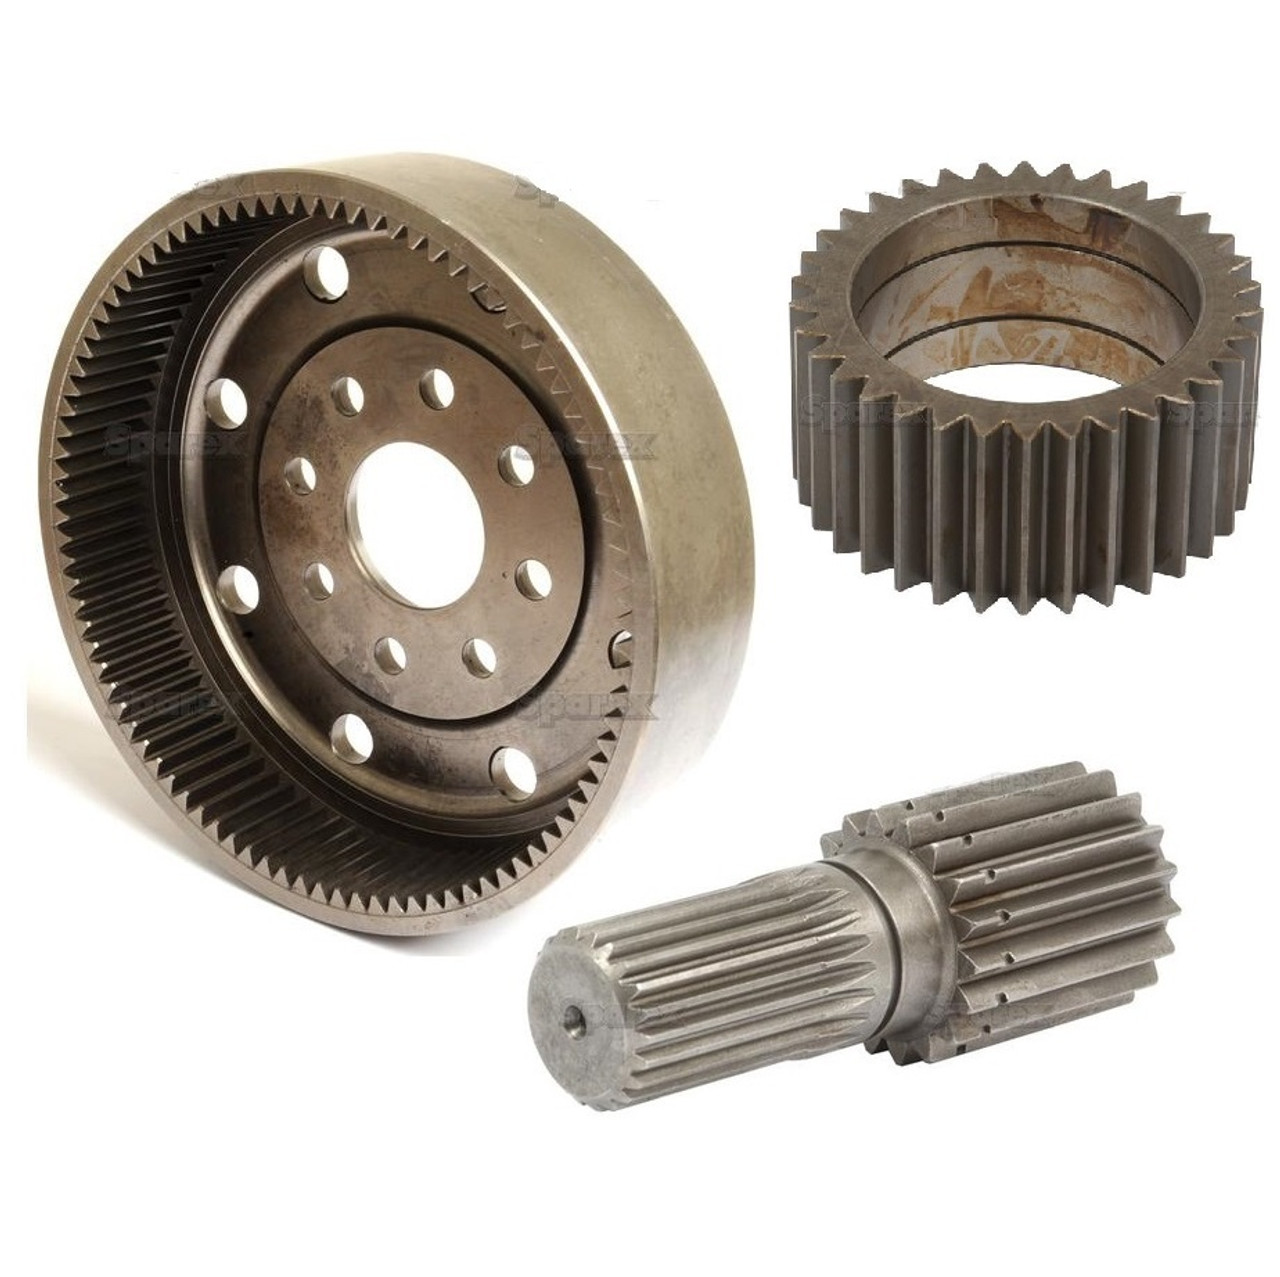 4WD Front Axle Parts